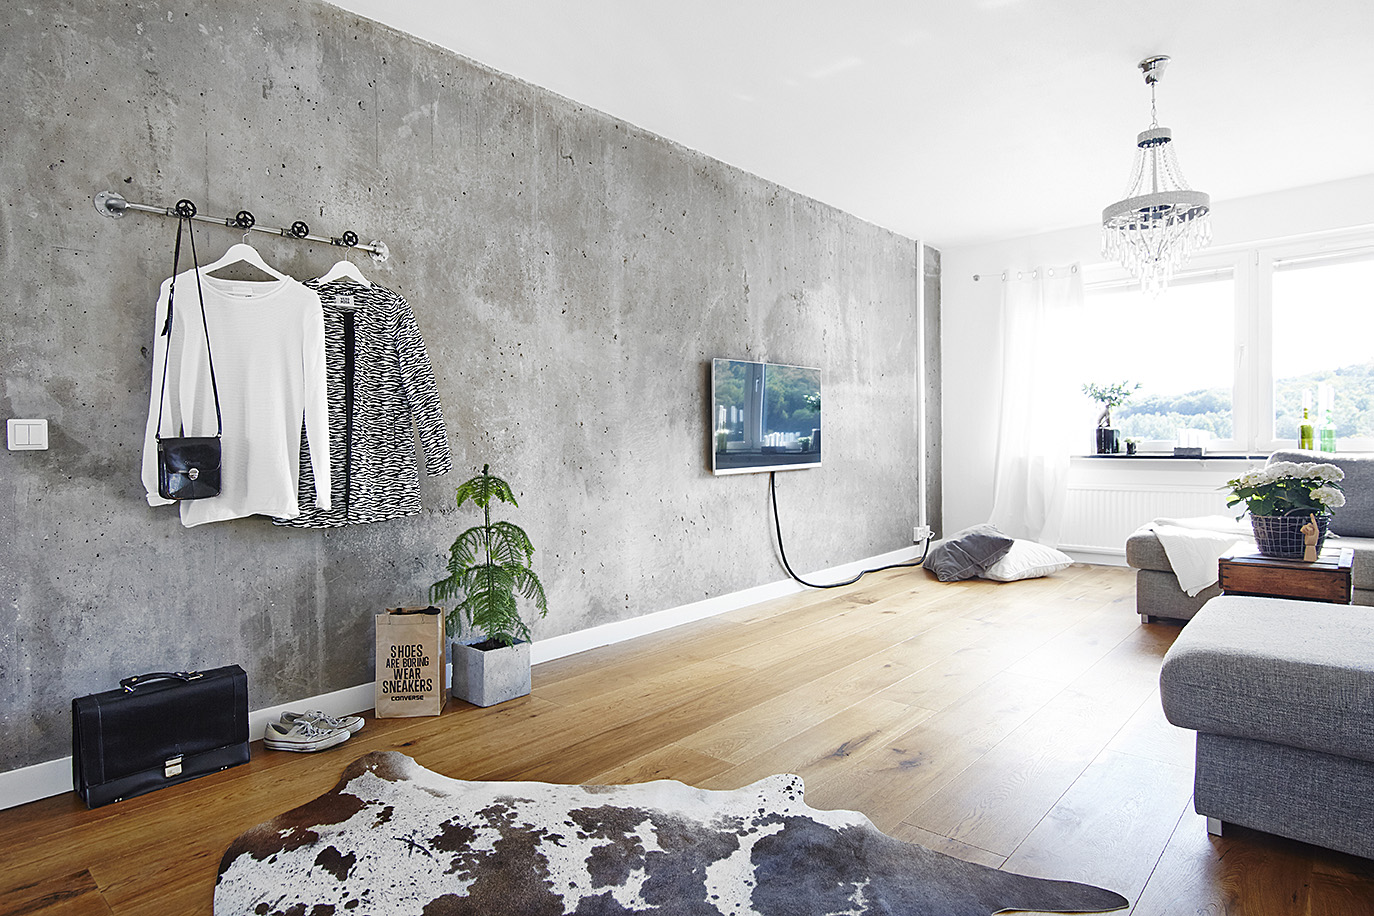 Living Room With A Concrete Wall